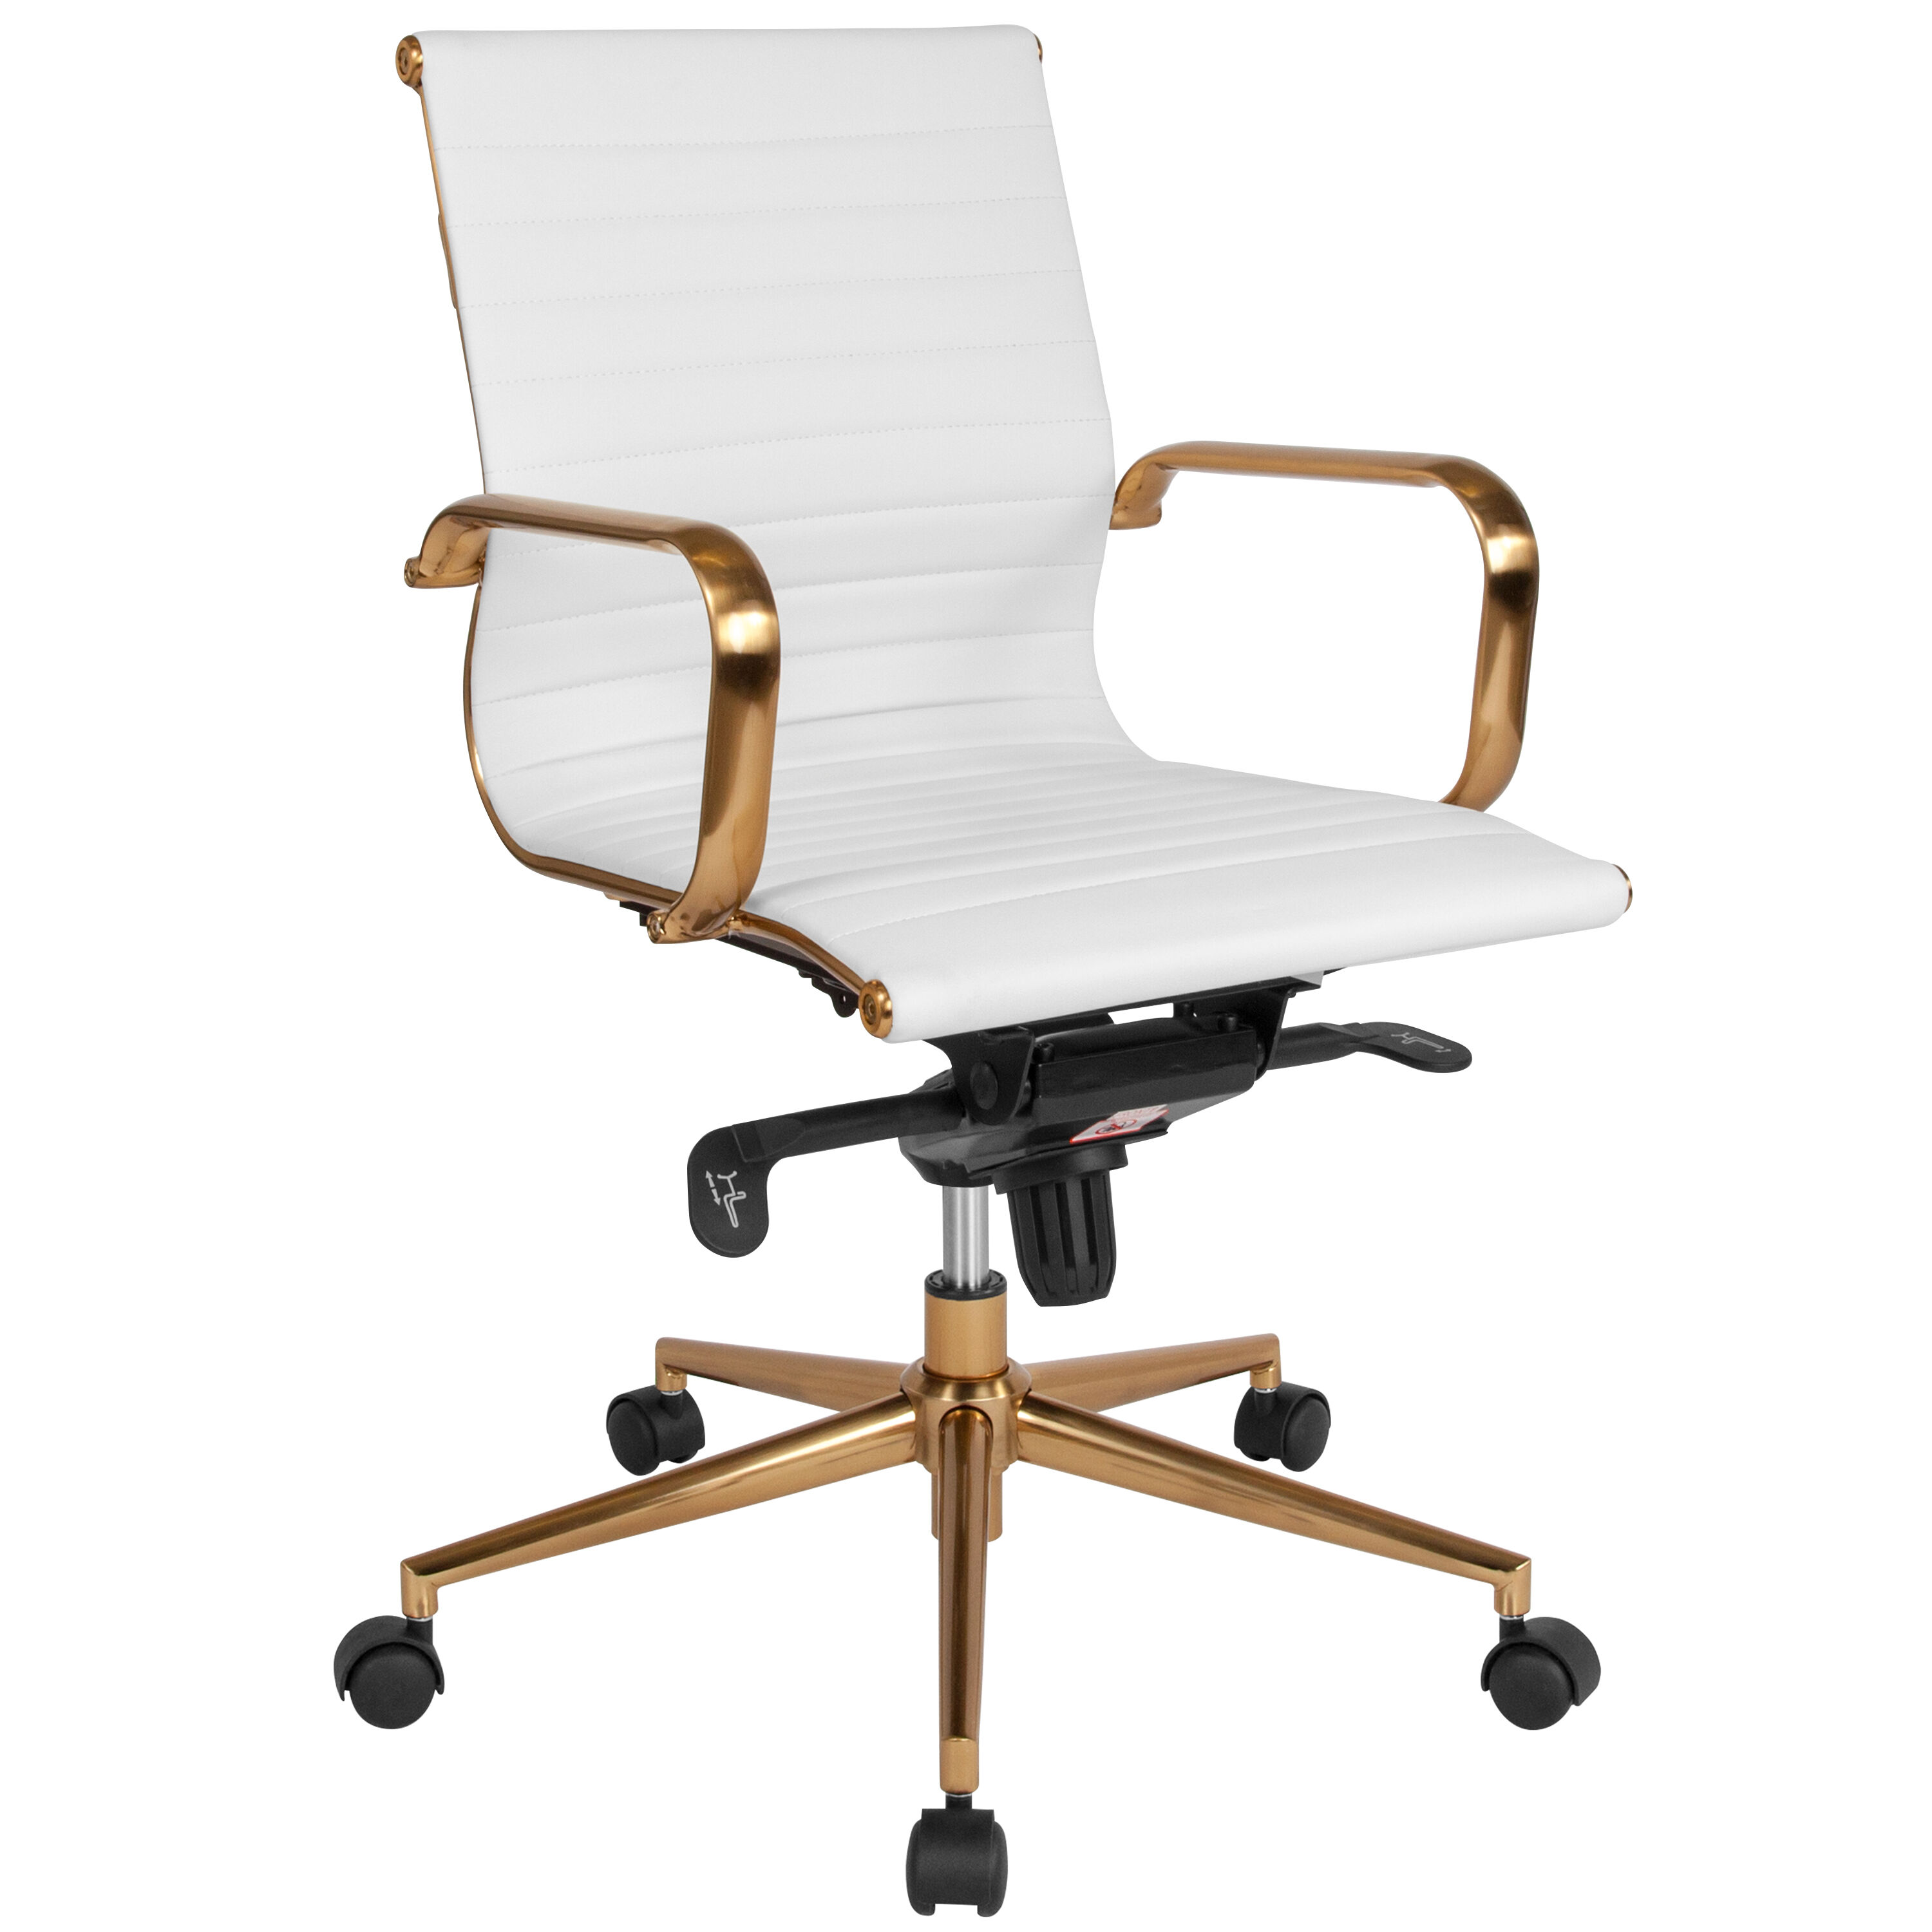 office chair gold set of two rocking chairs white mid back bt 9826m wh gd gg bizchair com our ribbed leather executive swivel with frame knee